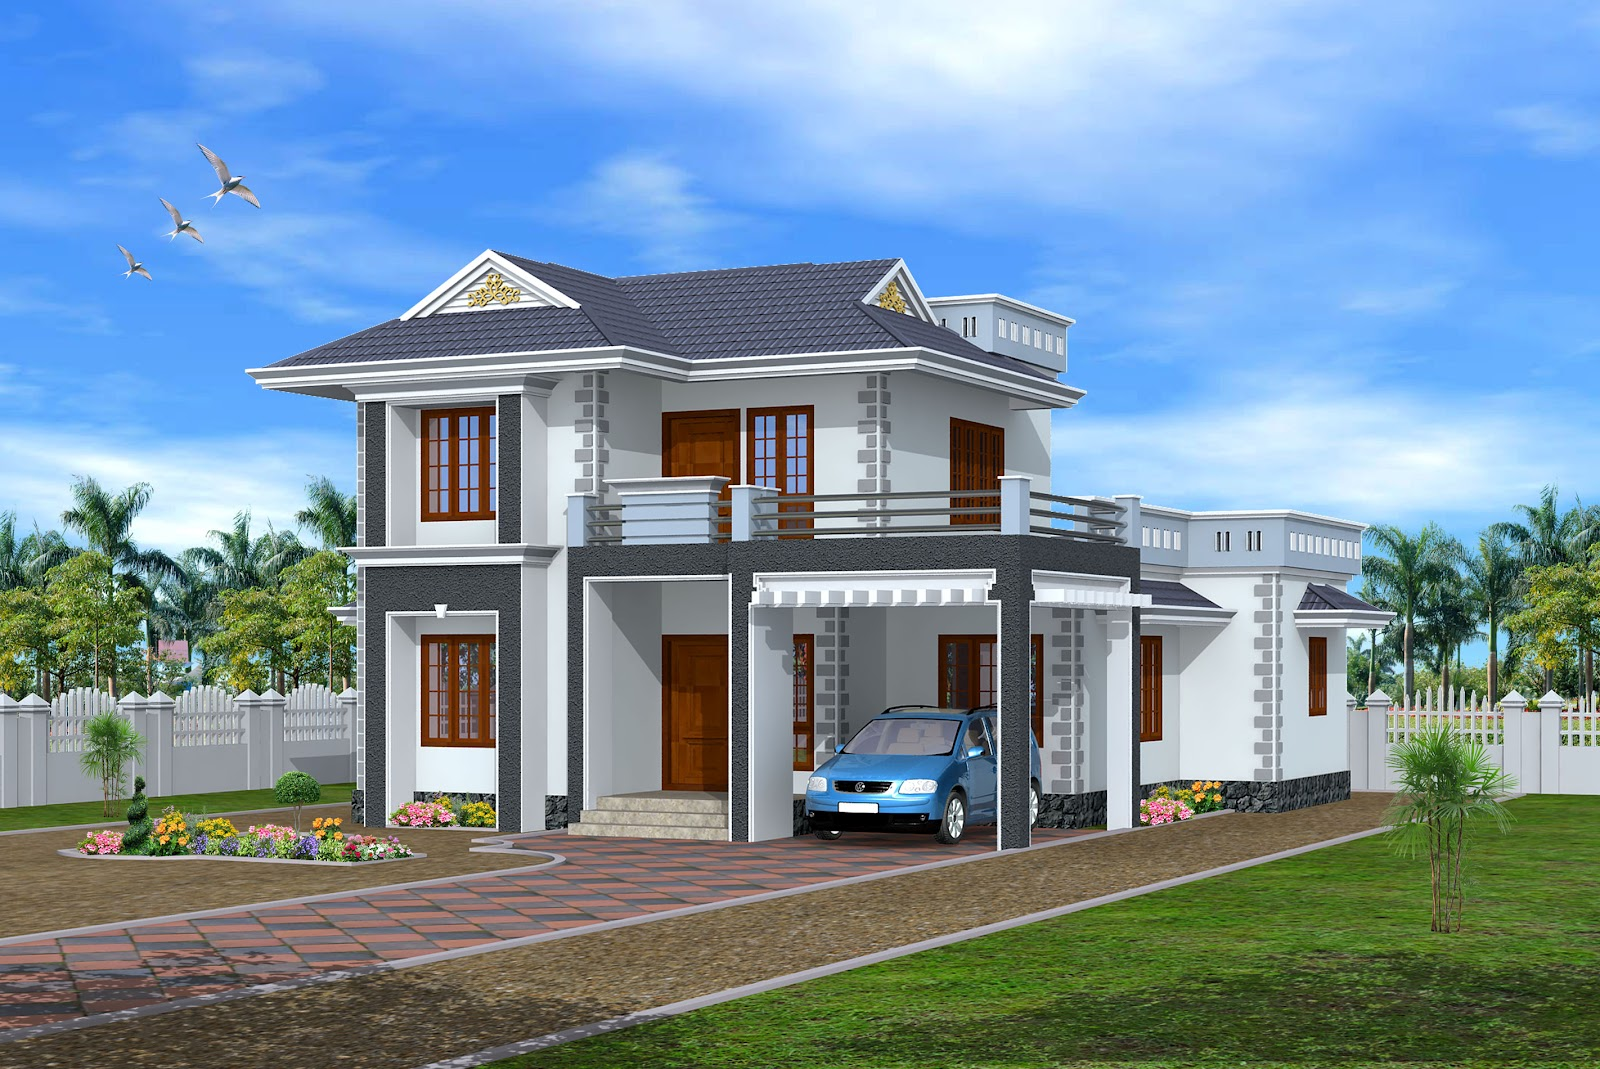 New home designs latest modern homes exterior designs views for House exterior ideas